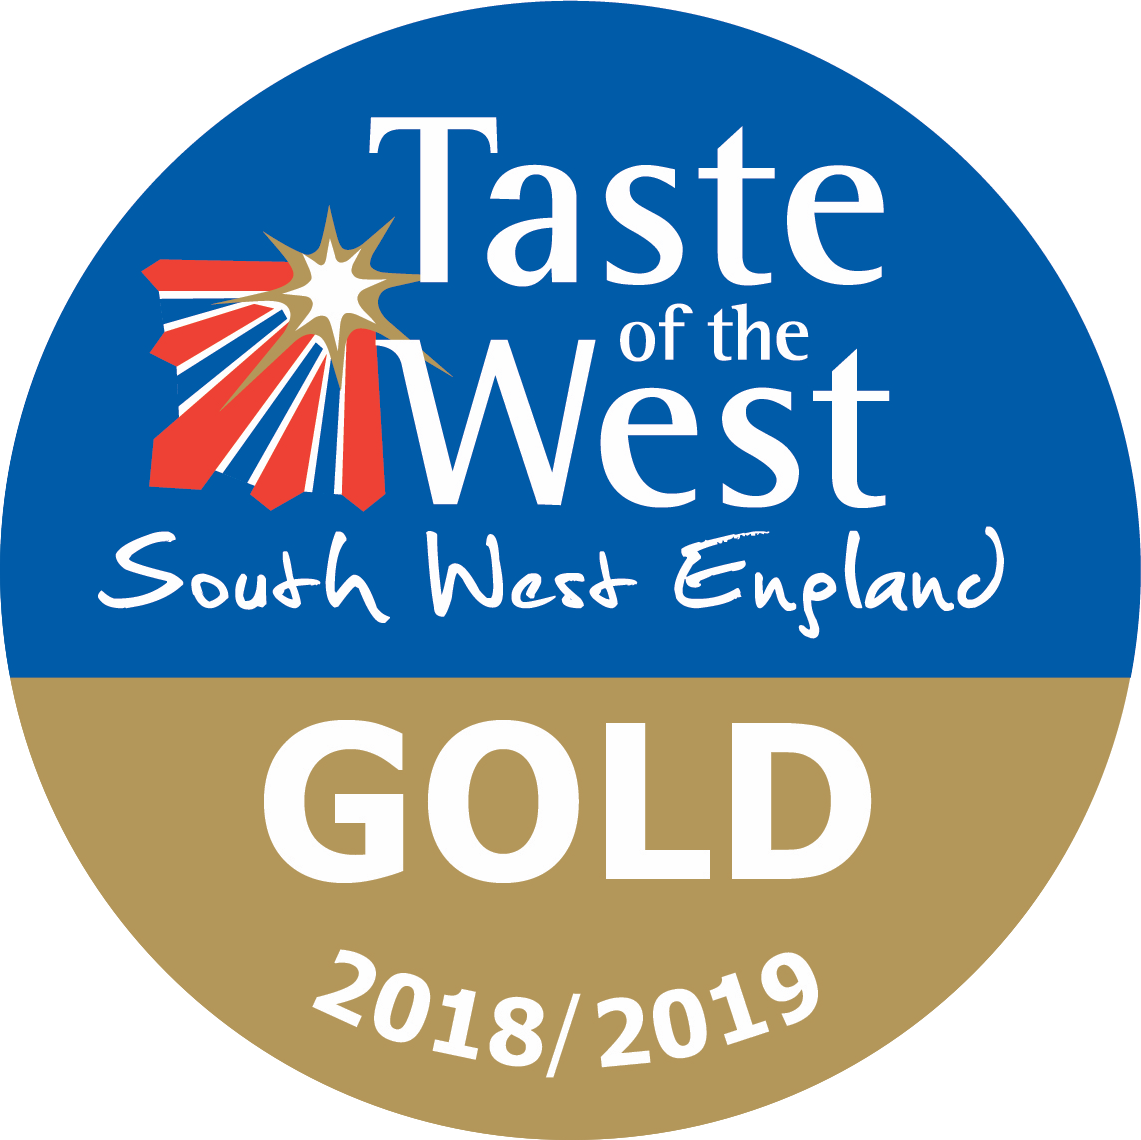 Taste of the West Gold Award 2018-2019 Logo